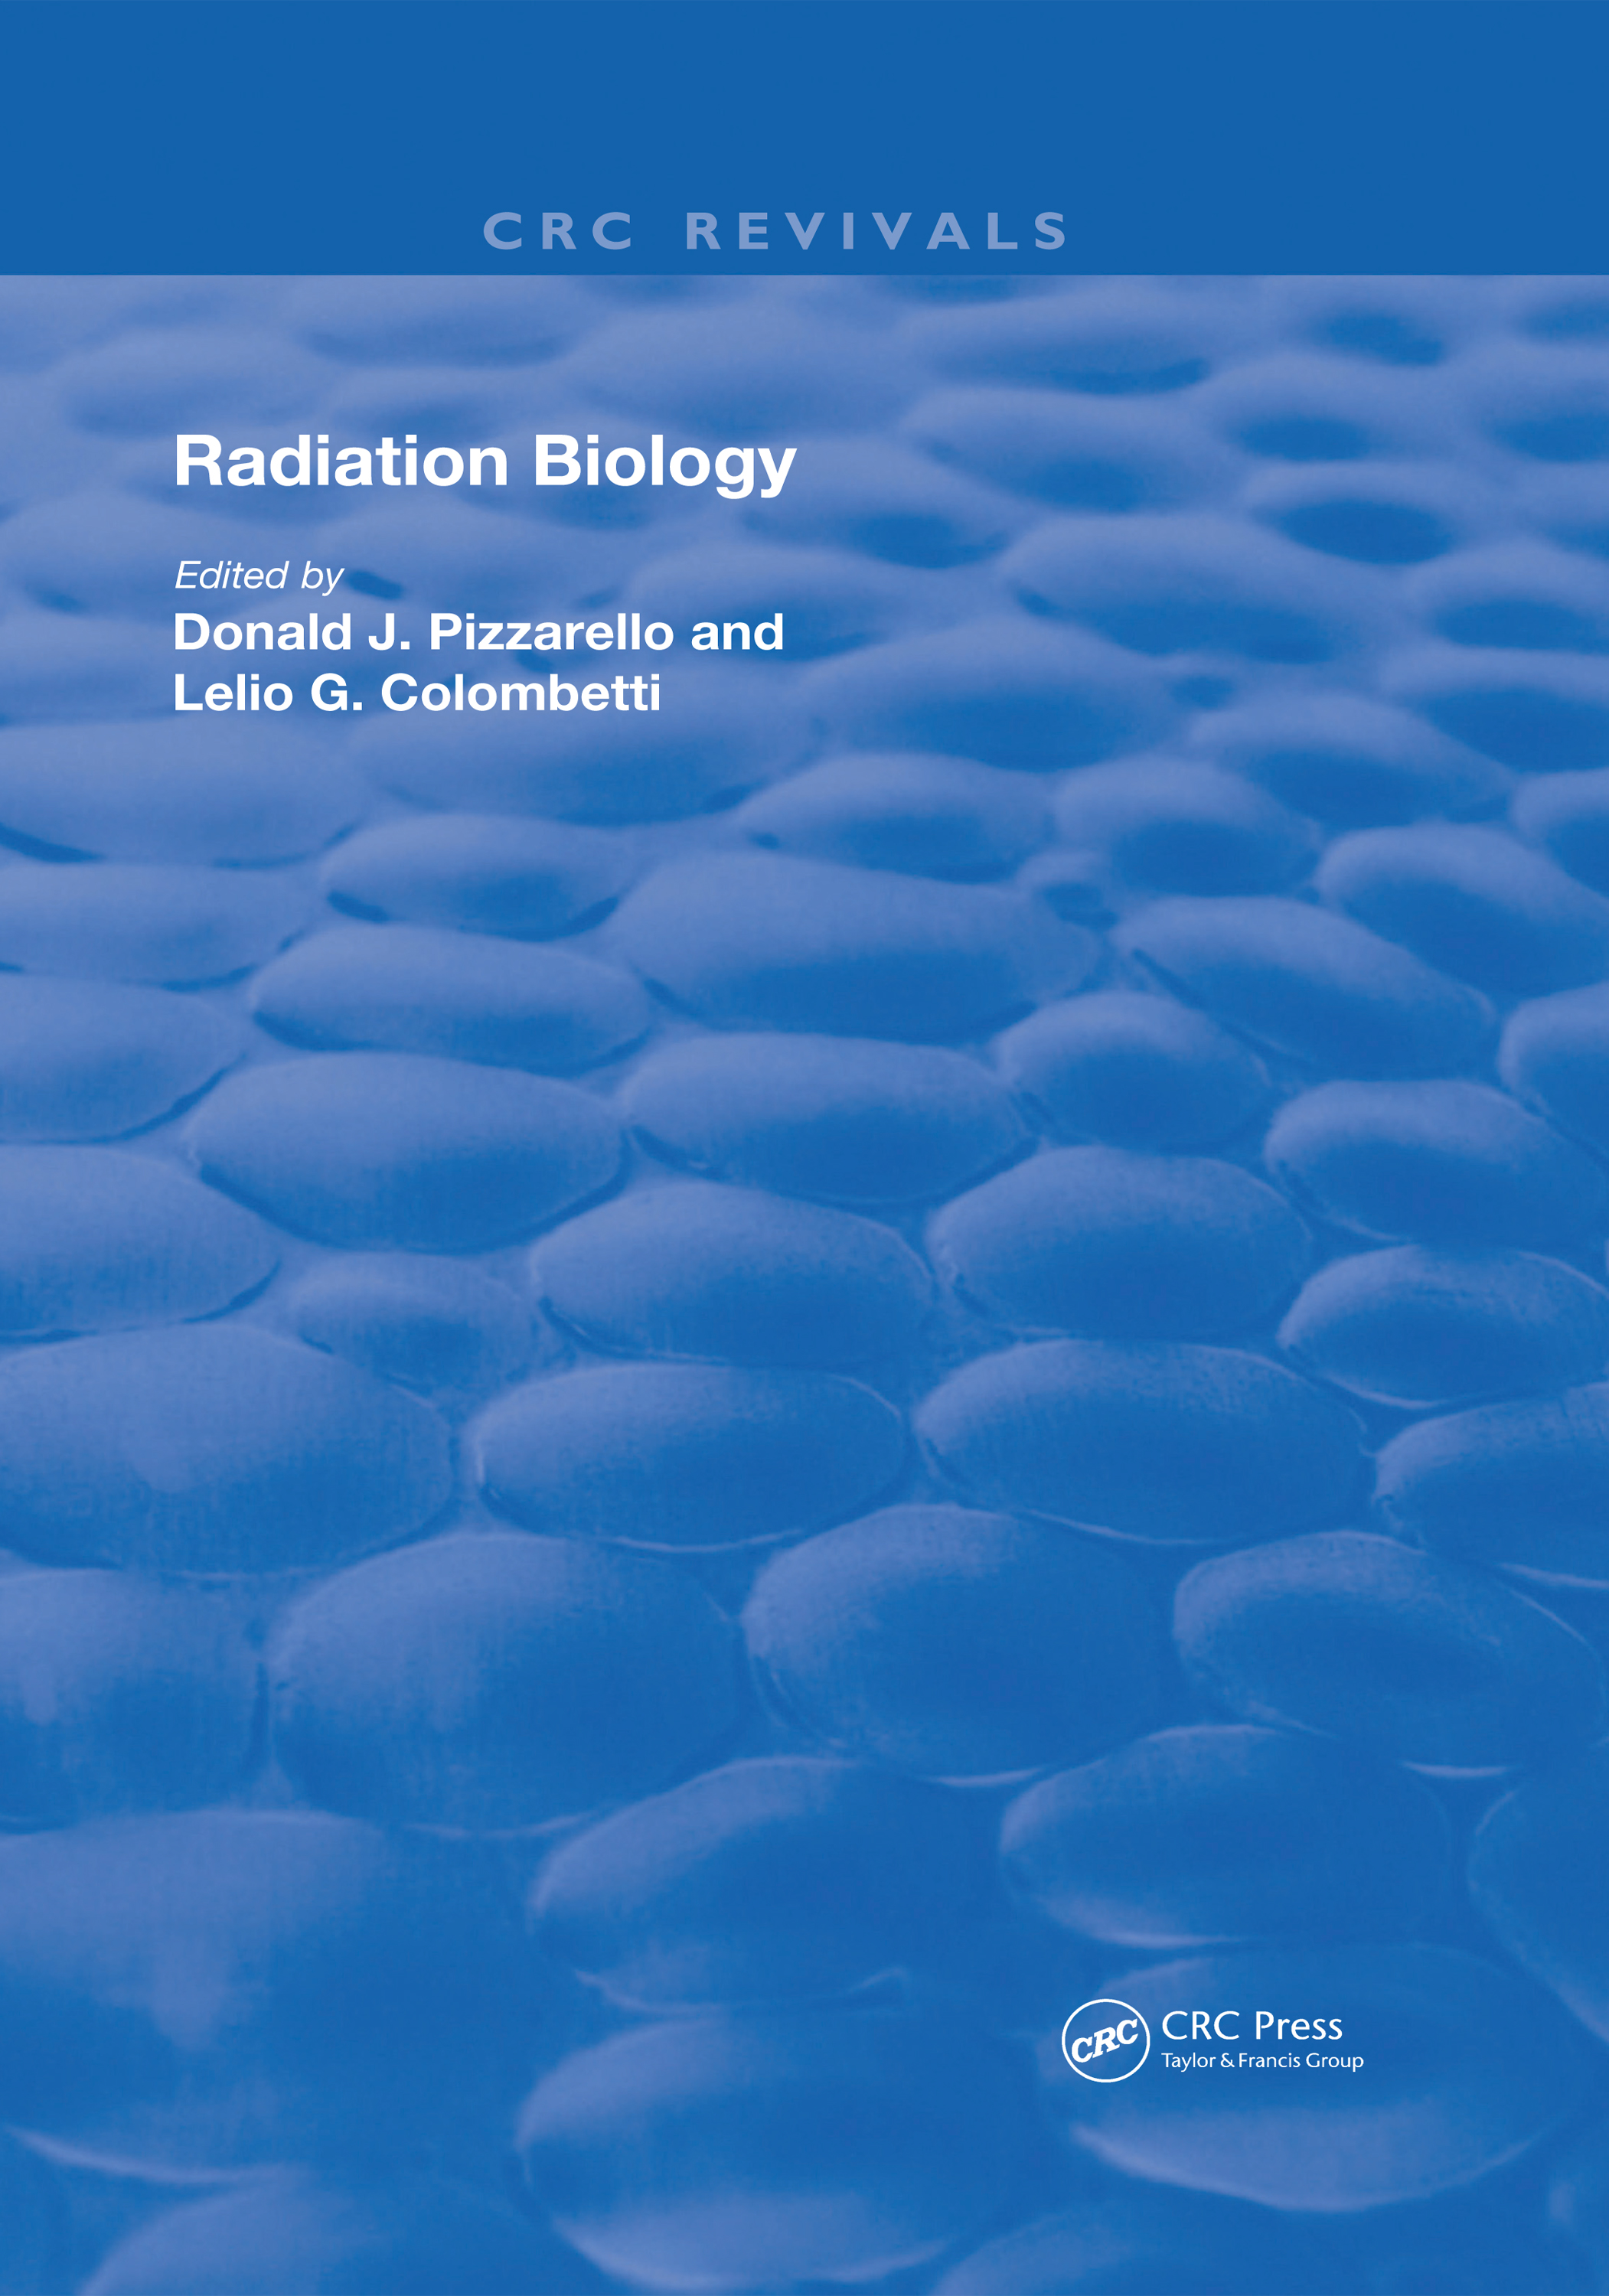 The Application of Particle Beams to Radiation Therapy*